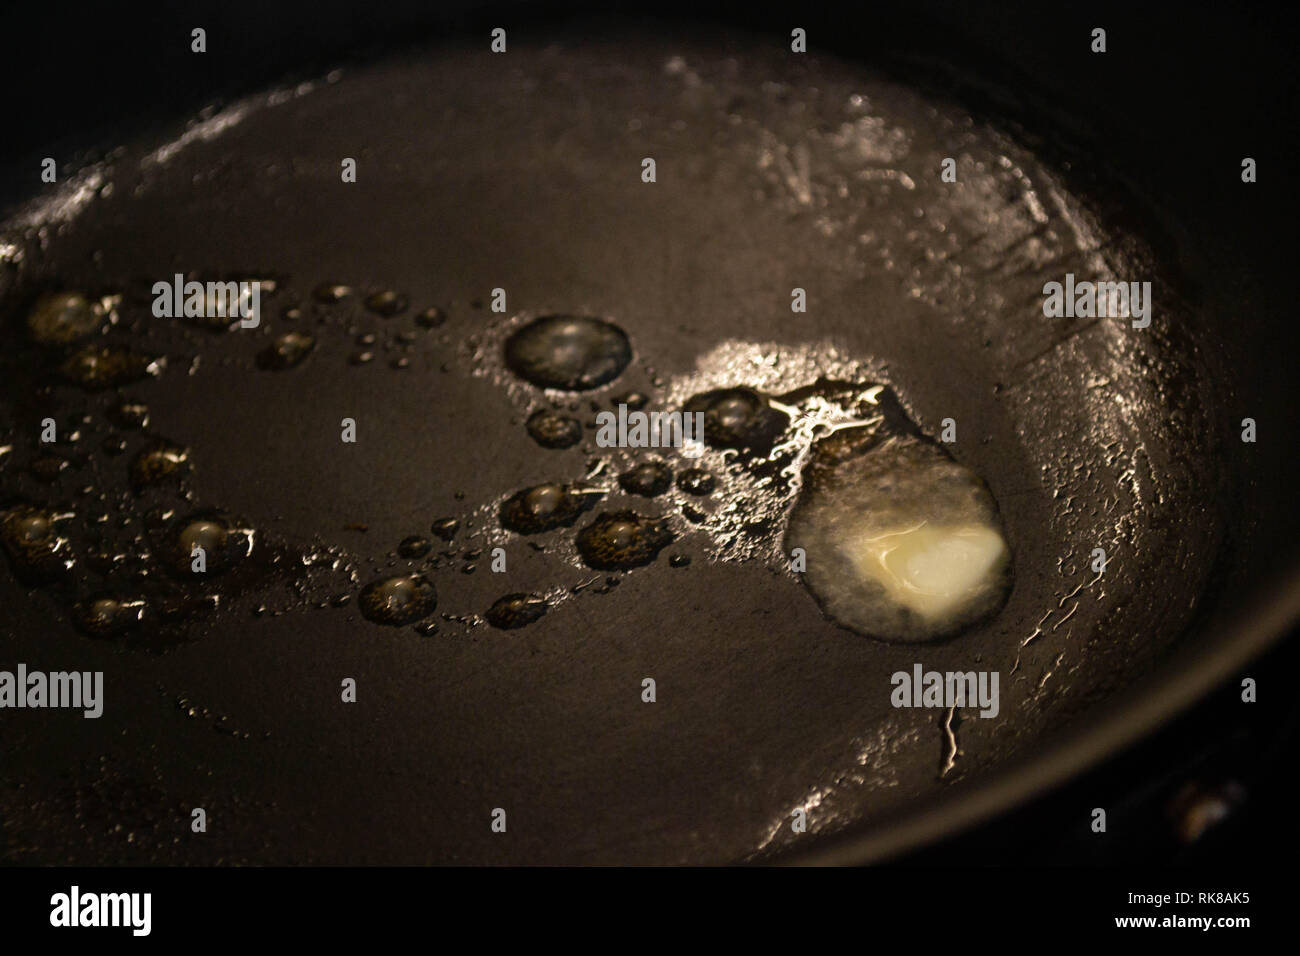 Melted butter sizzling in a nonstick teflon pan - Stock Image